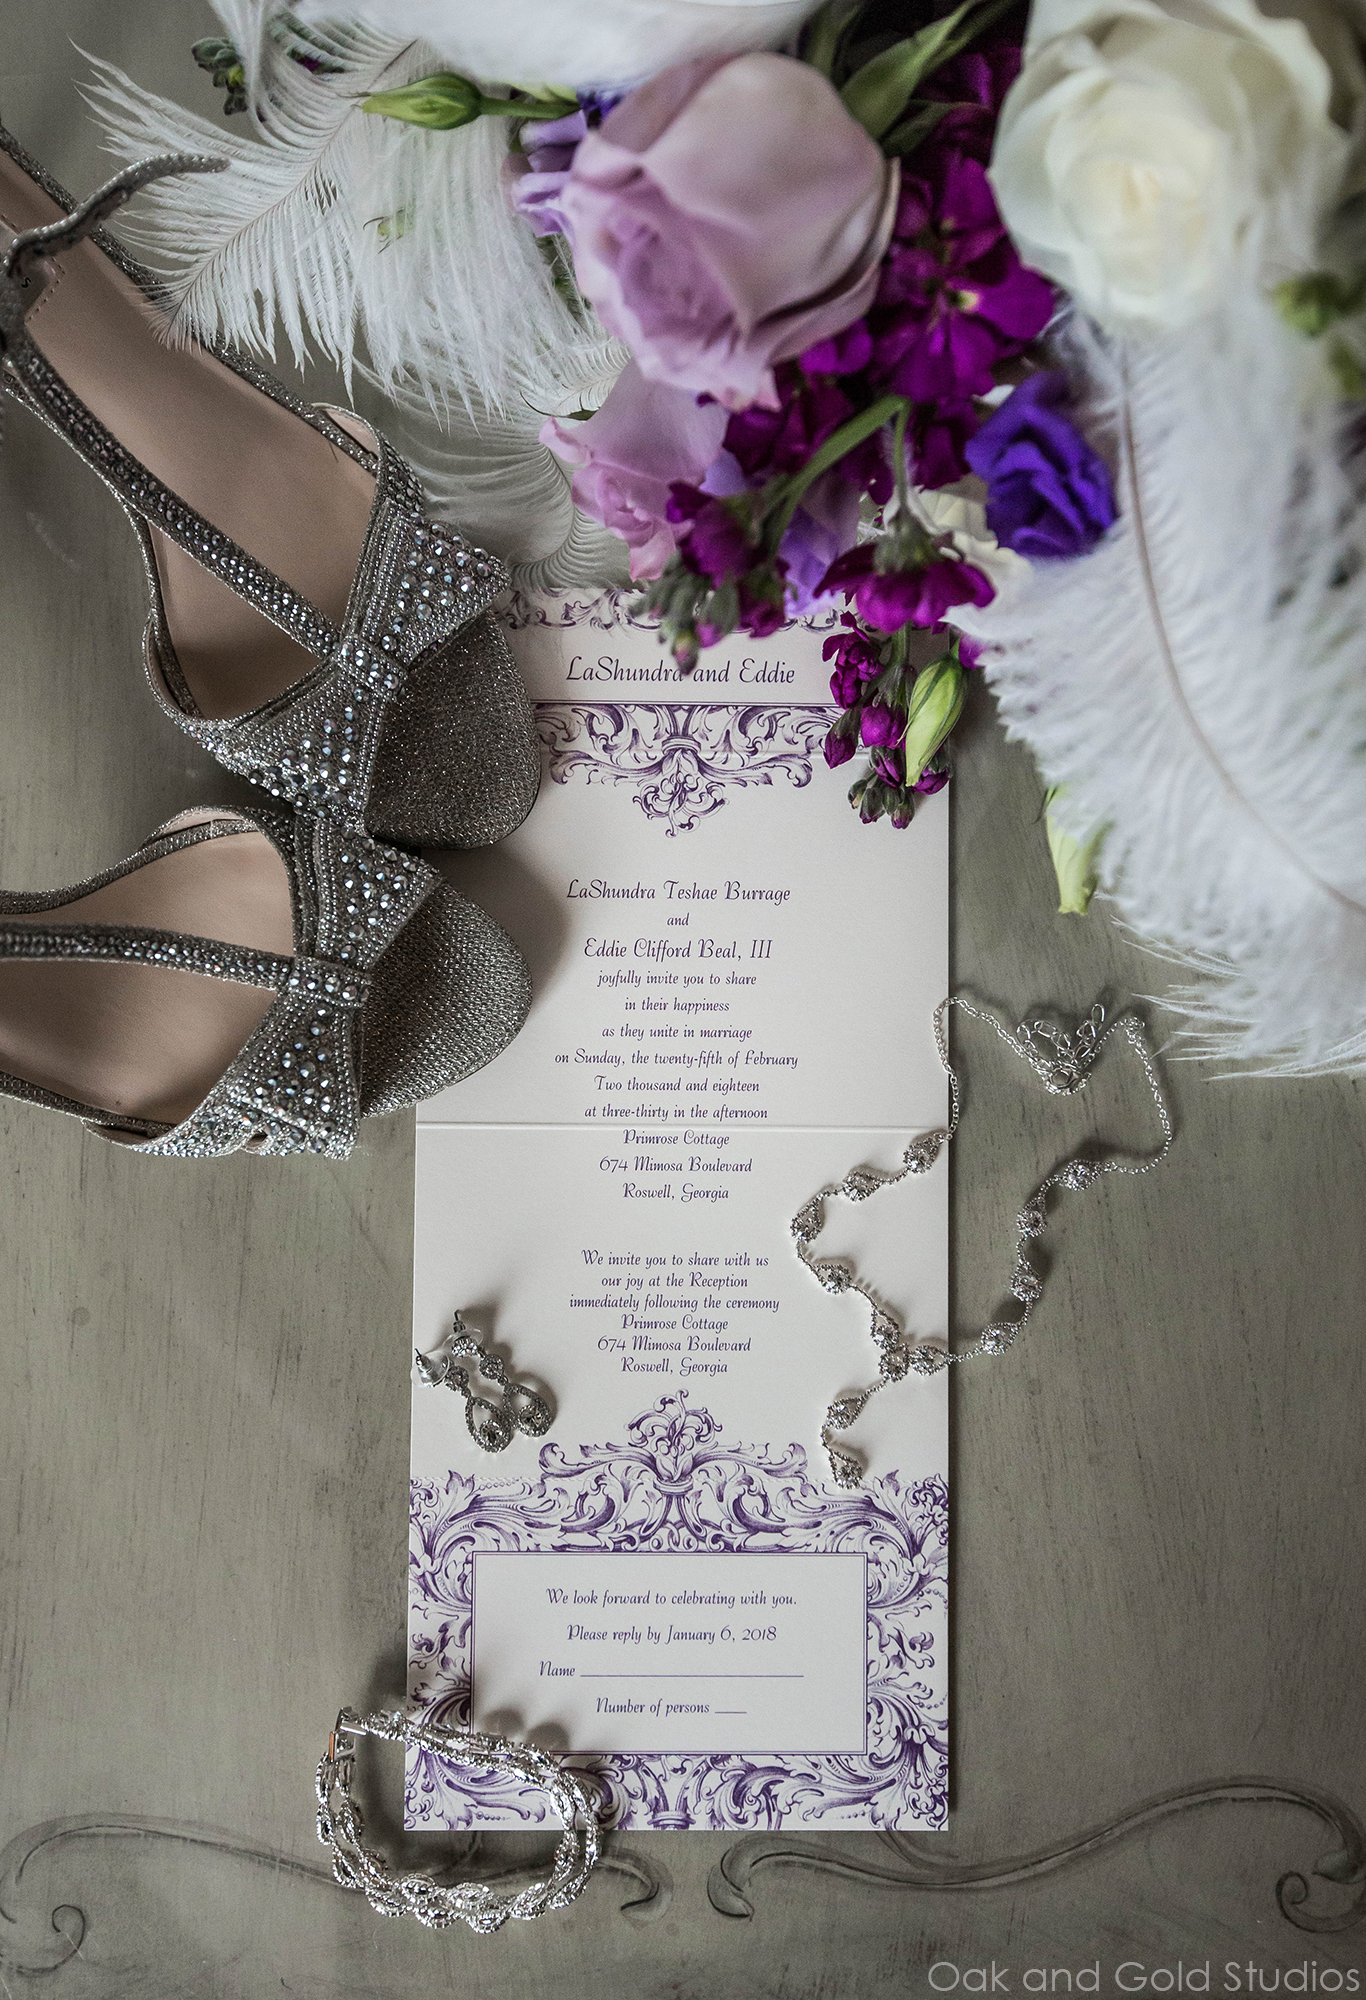 ultra voilet wedding invitation.jpg